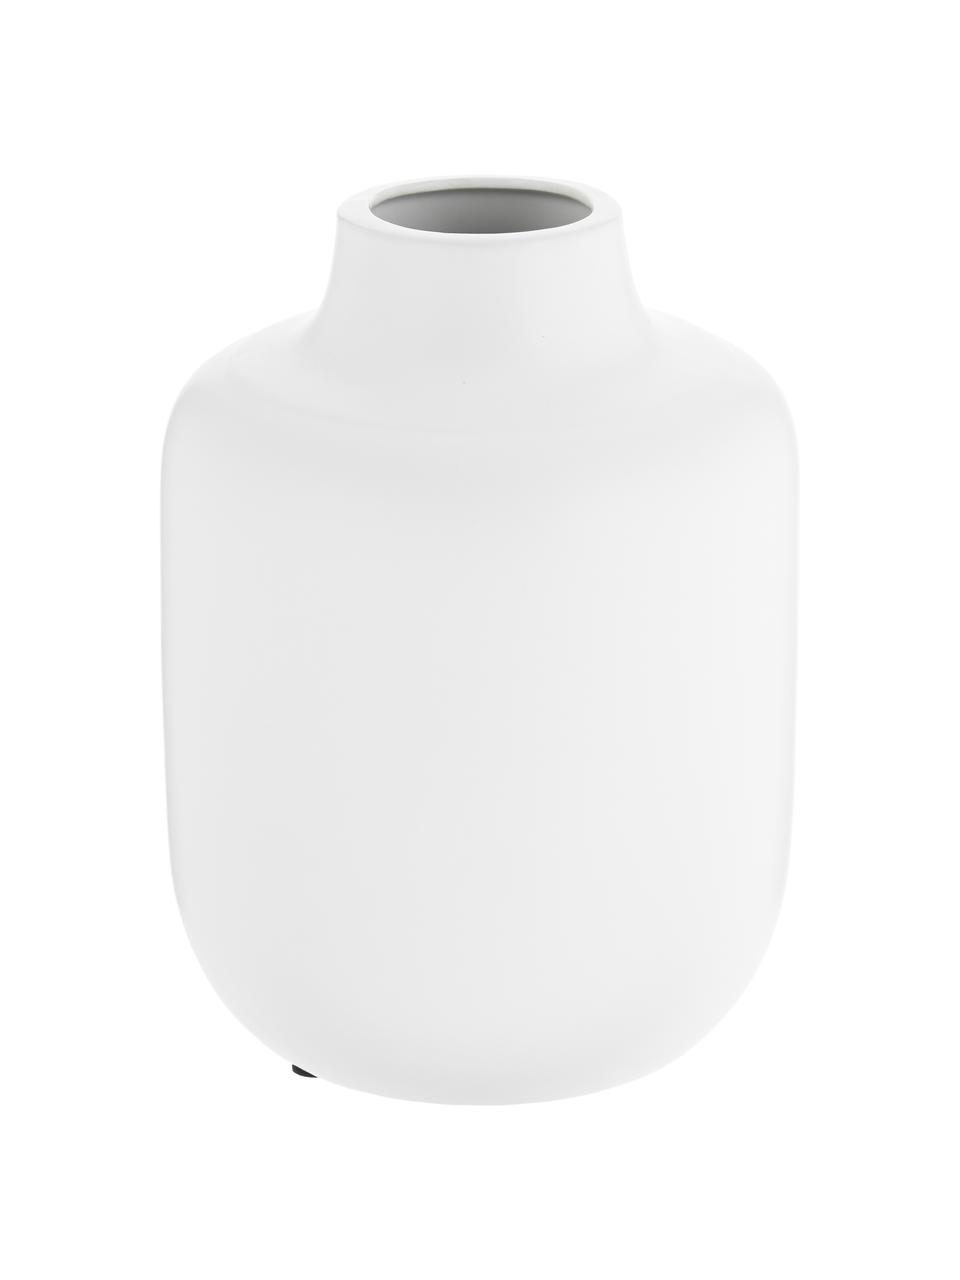 Vaso in porcellana Belle Blanc, Porcellana, Bianco, Ø 17 x Alt. 20 cm